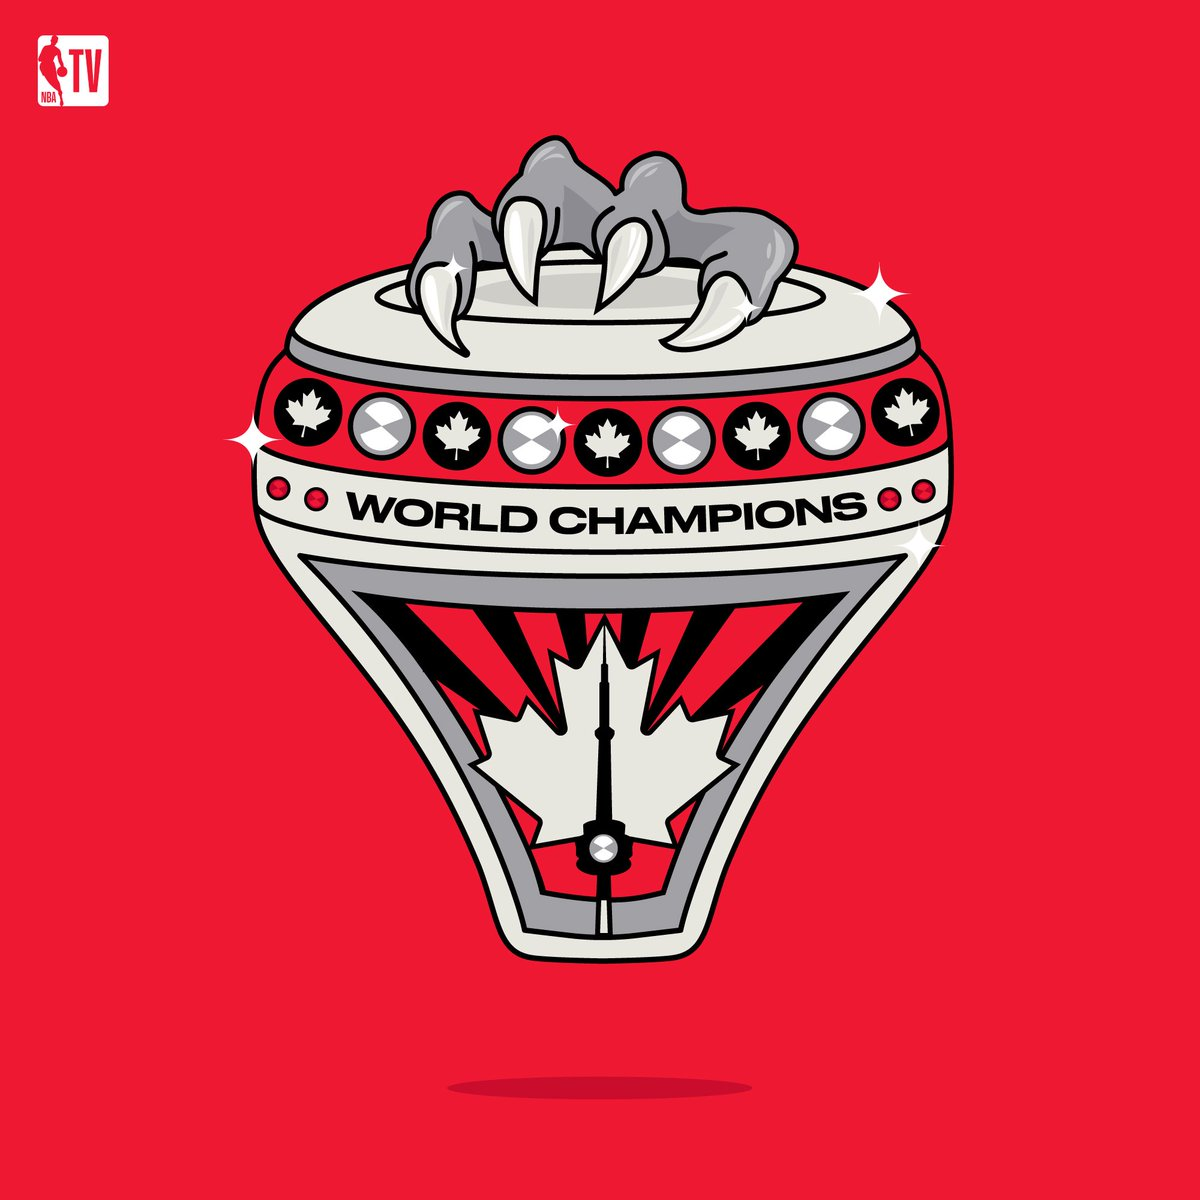 What do you think the @Raptors should use for their 2019 championship ring design? 💍🤔 Enter our @NBA_Reddit Raptors Ring Design Challenge & create your own look: bit.ly/2MAoNdH